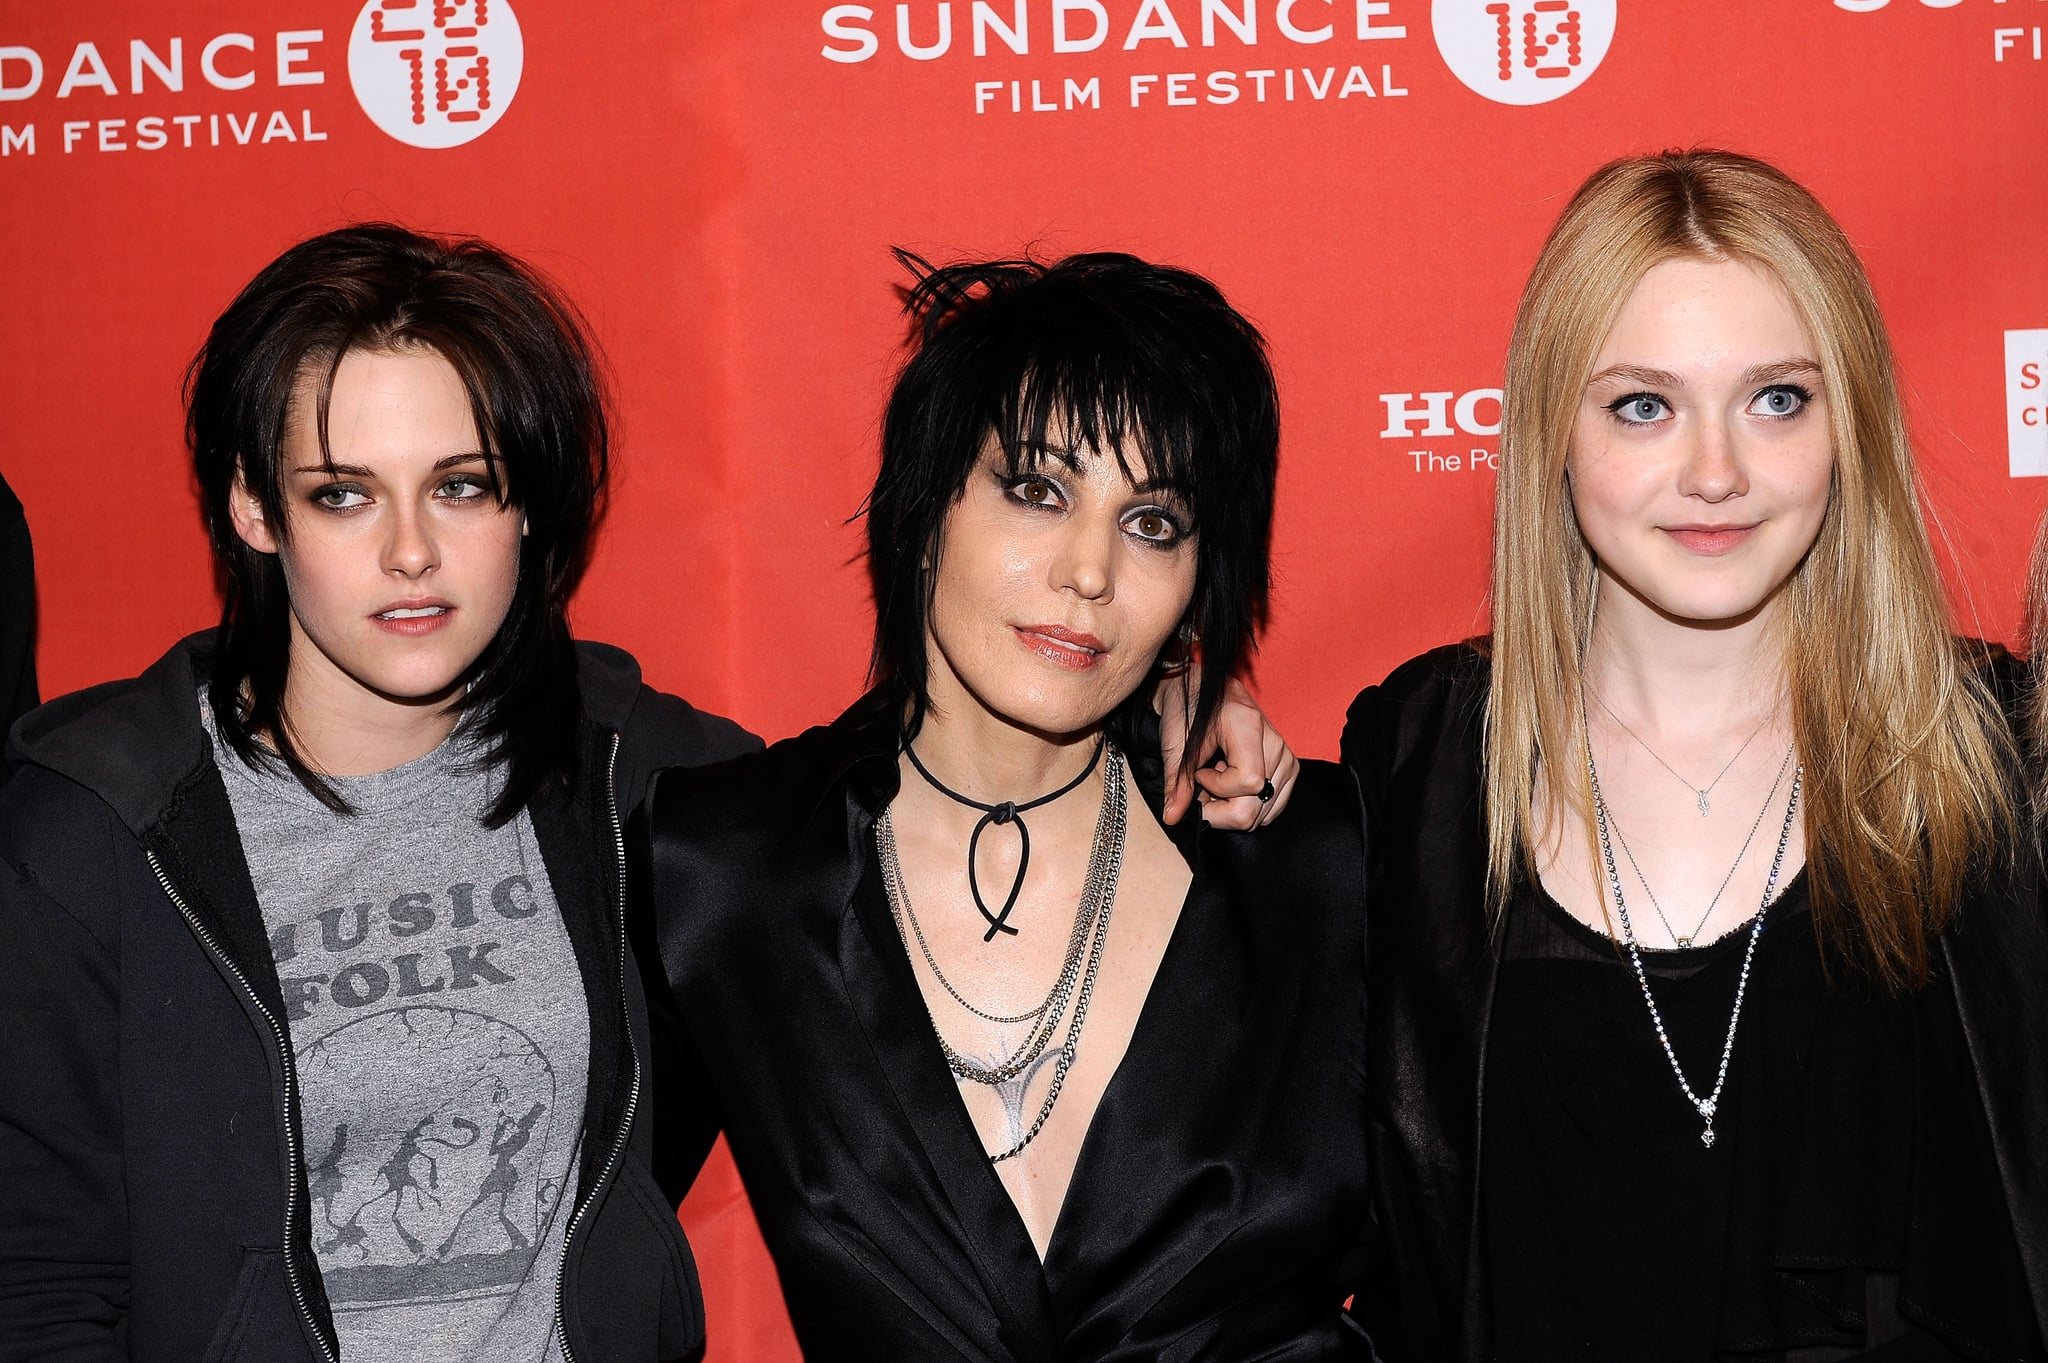 Simply matchless Kristen stewart joan jett and cherie currie words